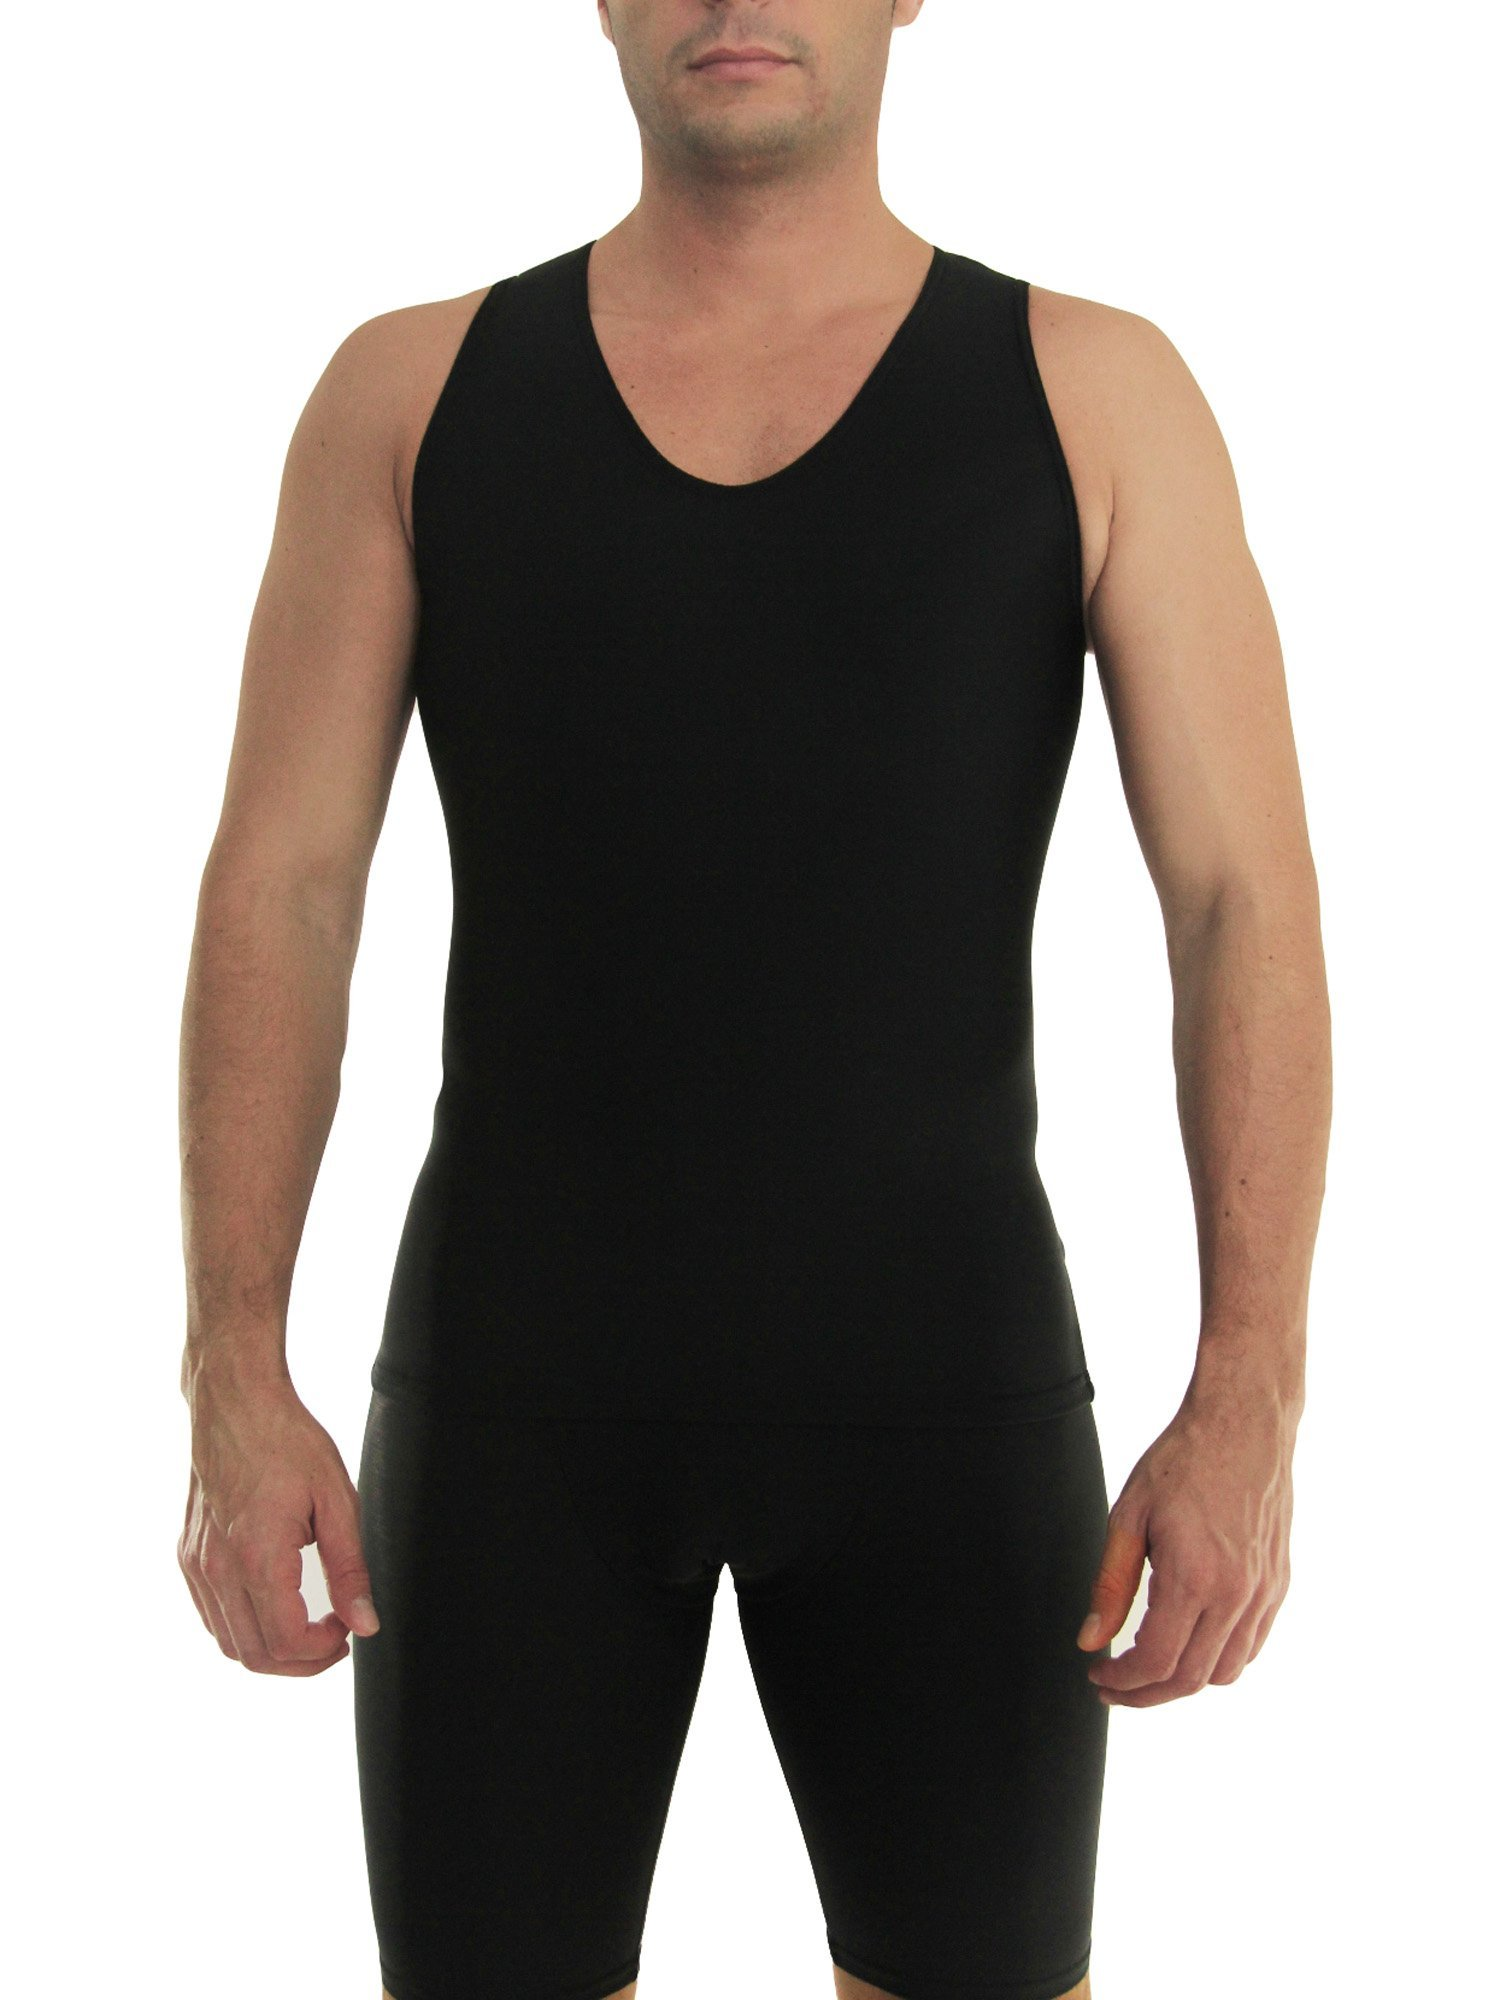 Underworks Mens Extreme Gynecomastia Chest Binder V-Tank Top 3-Pack Small Black by Underworks (Image #1)